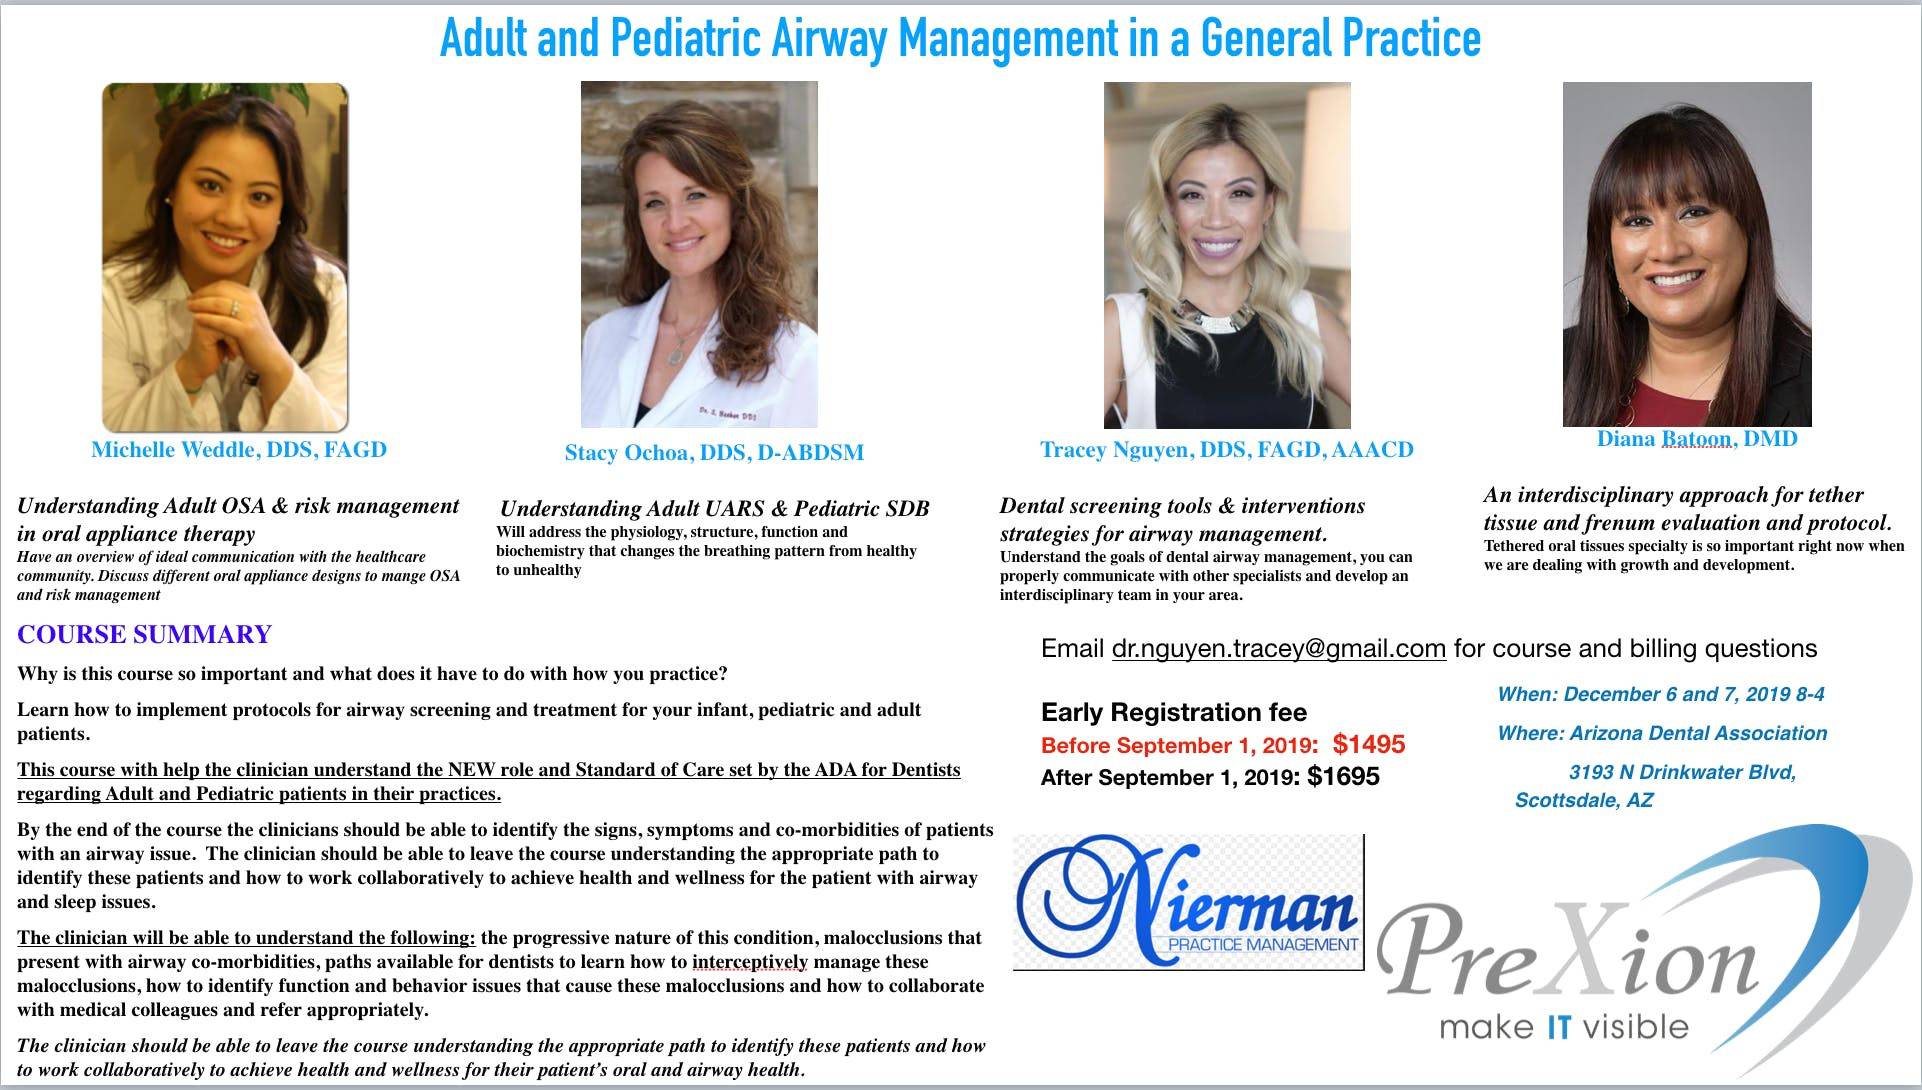 Adult and Pediatric Airway Management in a General Practice